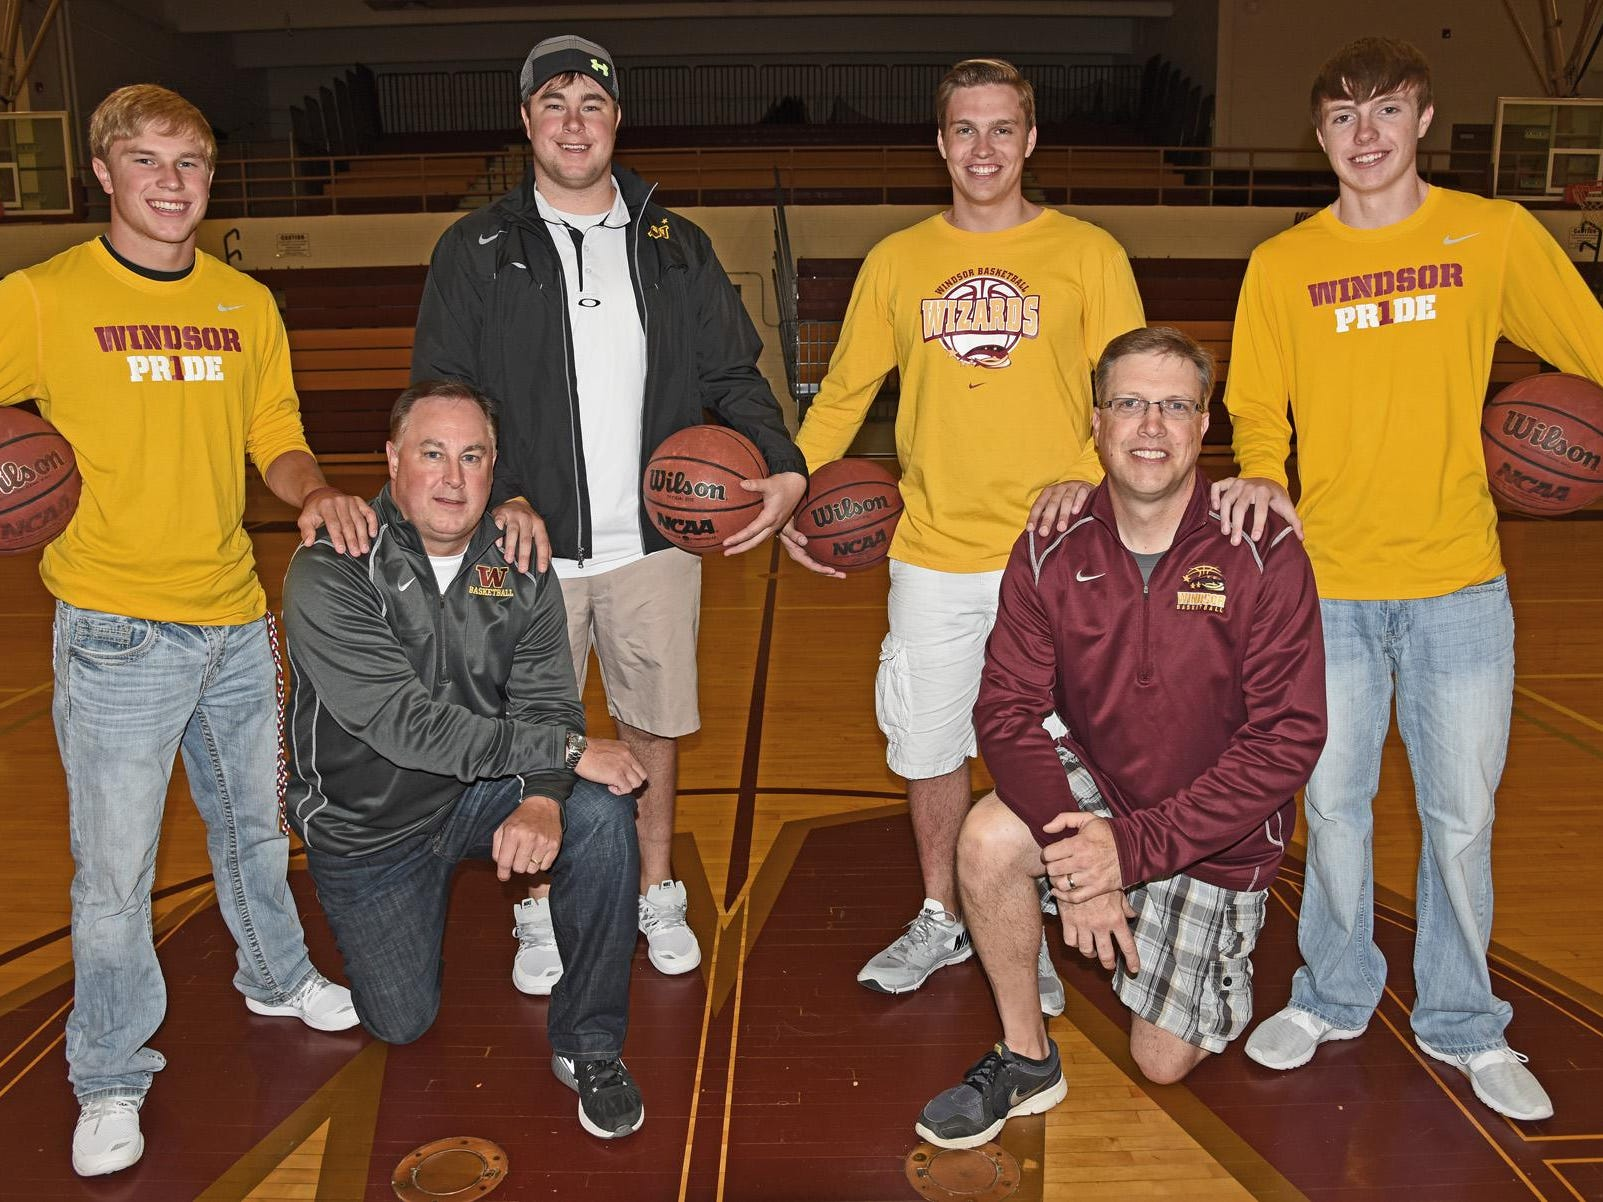 The Schmidts and Baldwins have provided Windsor with a long line of athletes. From left to right are Landon Schmidt, a senior to be; Mark Schmidt, 1985 Windsor graduate; Aaron Schmidt, 2012 graduate; Alex Baldwin, 2013 graduate; Troy Baldwin, 1985 graduate; and Noah Baldwin, an upcoming senior.